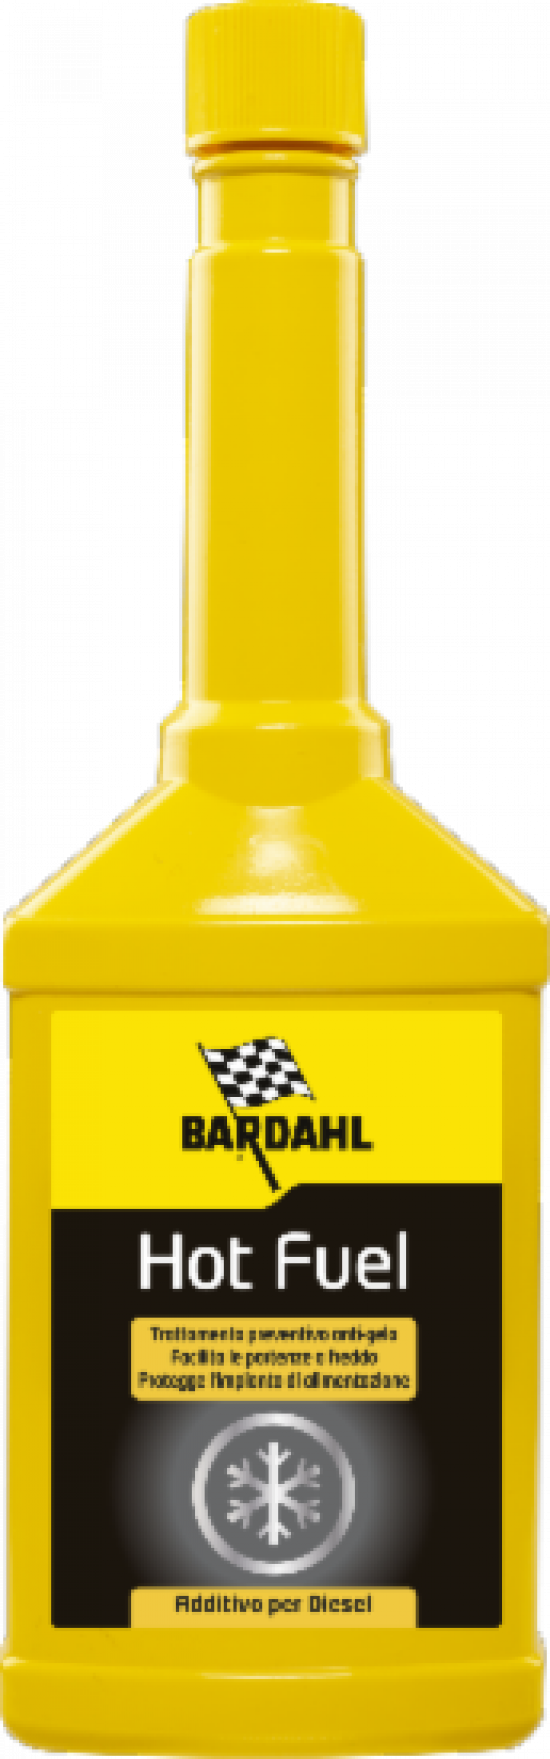 Bardahl HOT FUEL